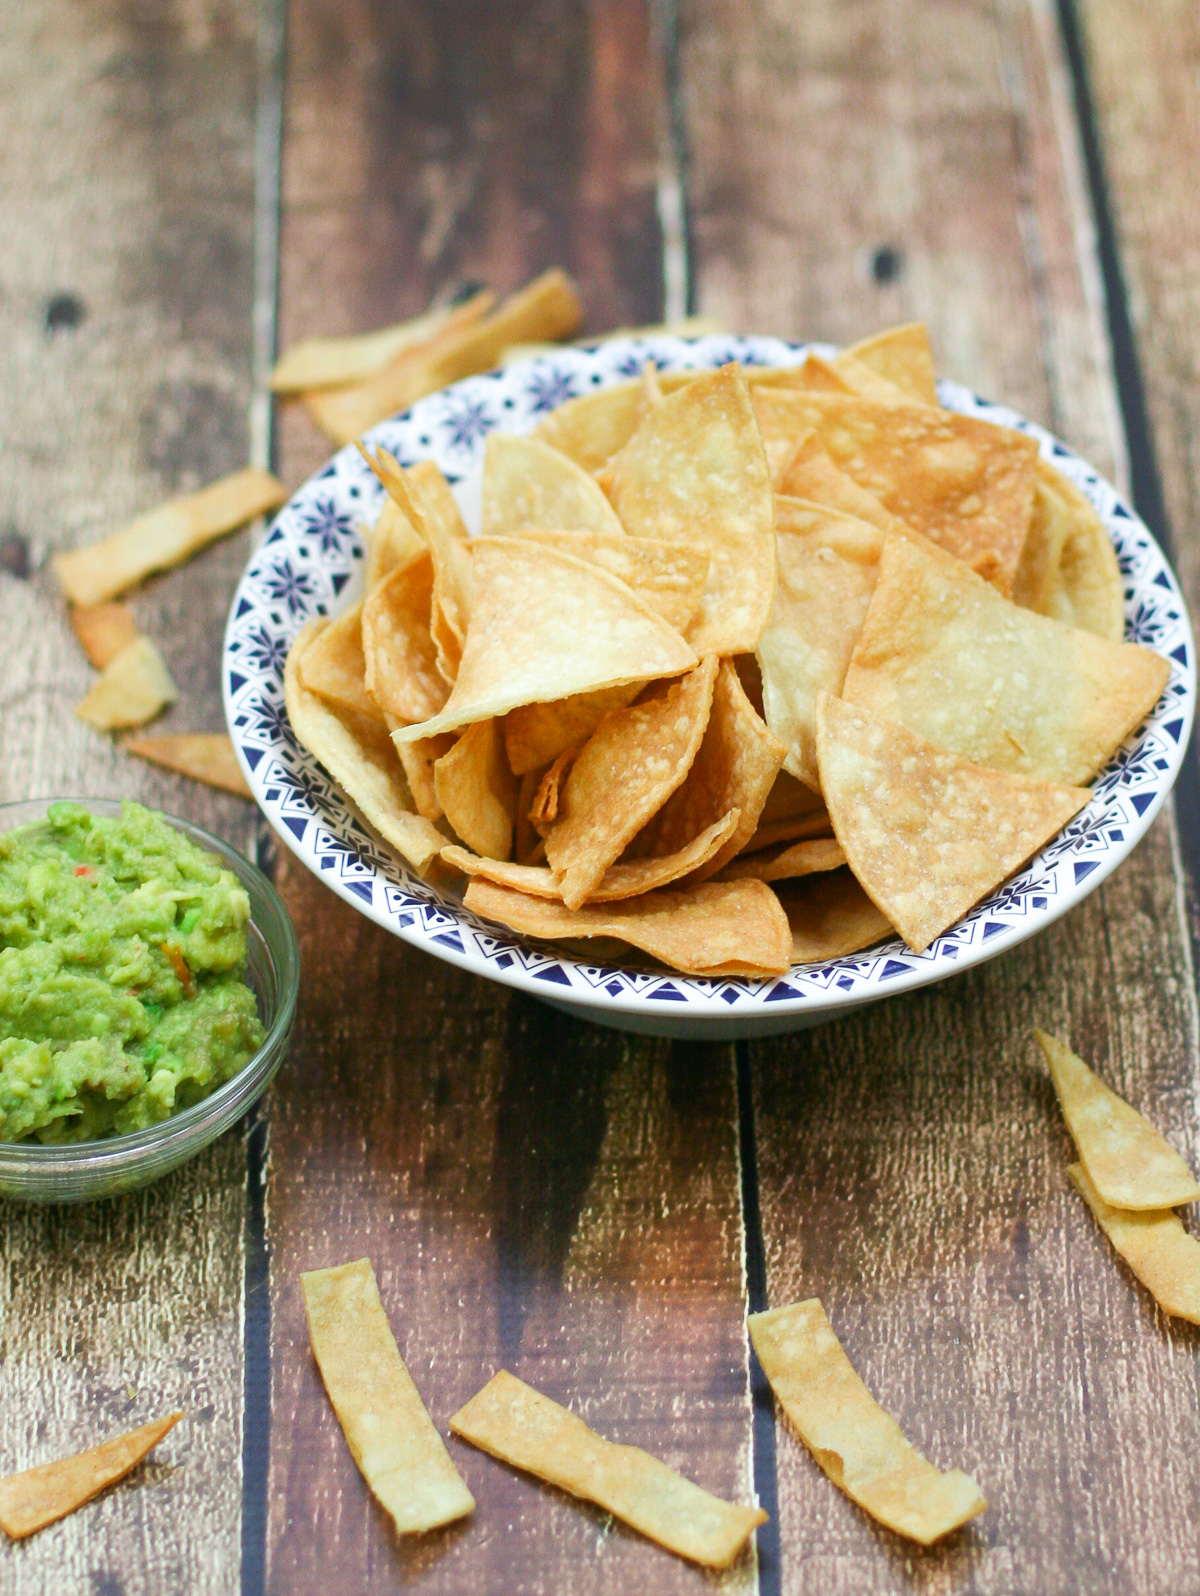 Homemade tortilla chips erica julson for What can i make with tortilla chips